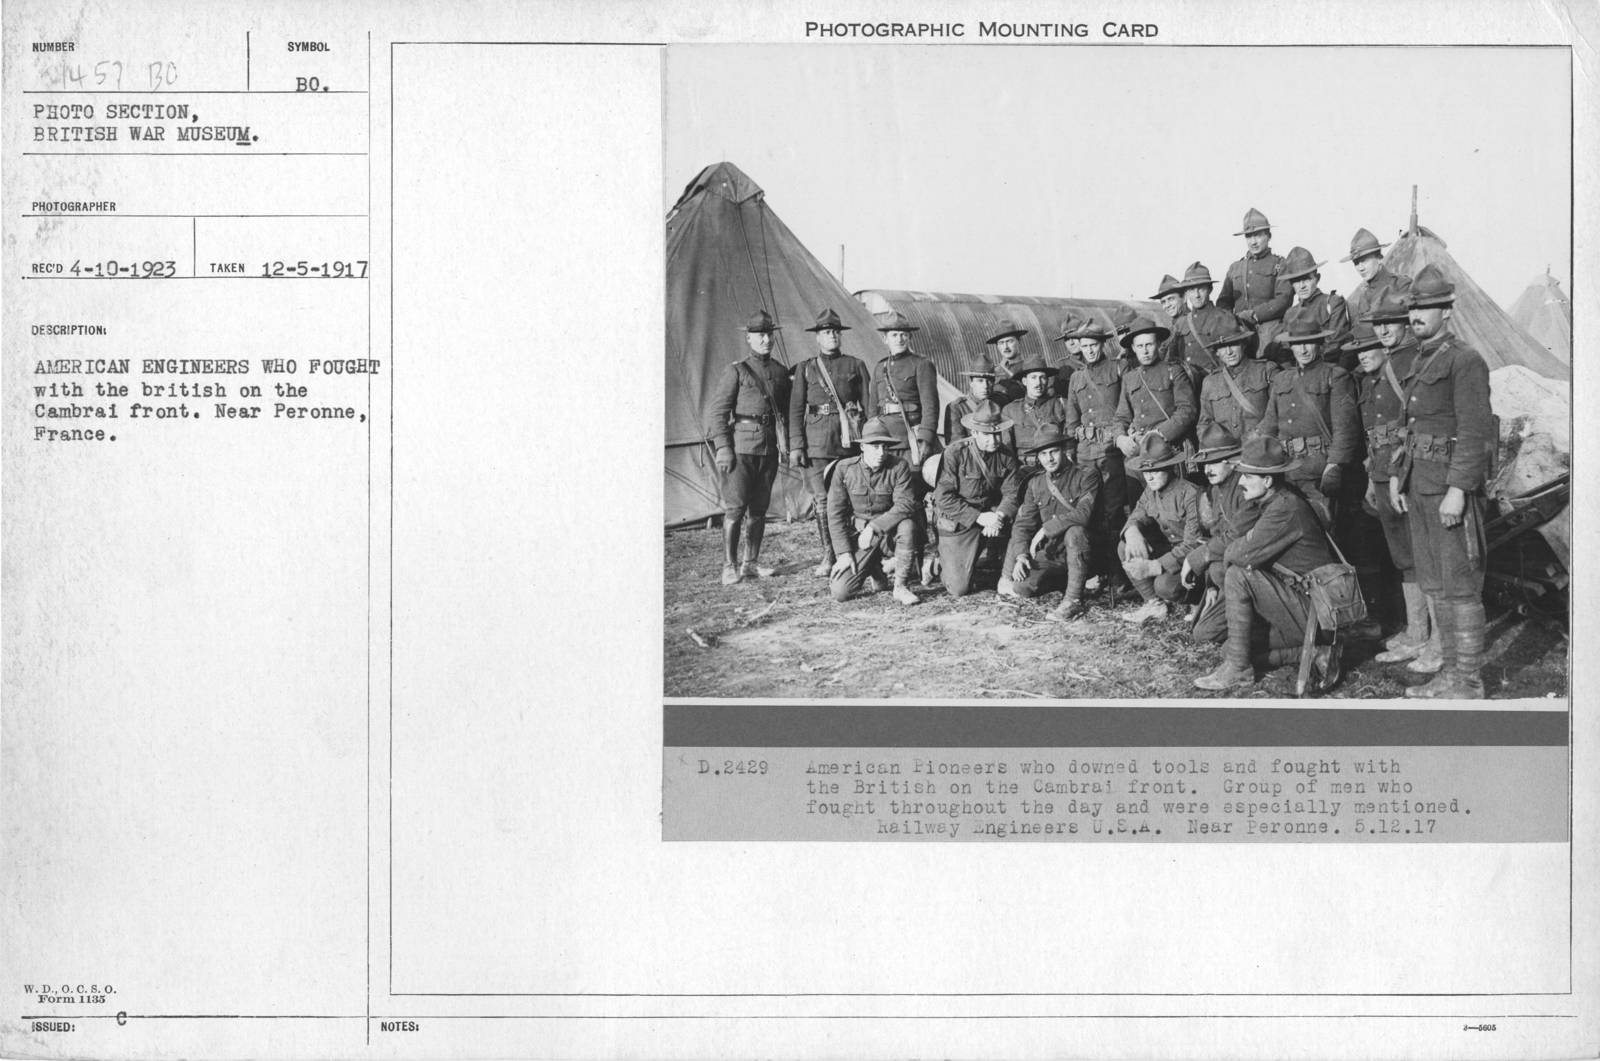 American engineers who fought with the British on the Cambrai front. Near Peronne, France